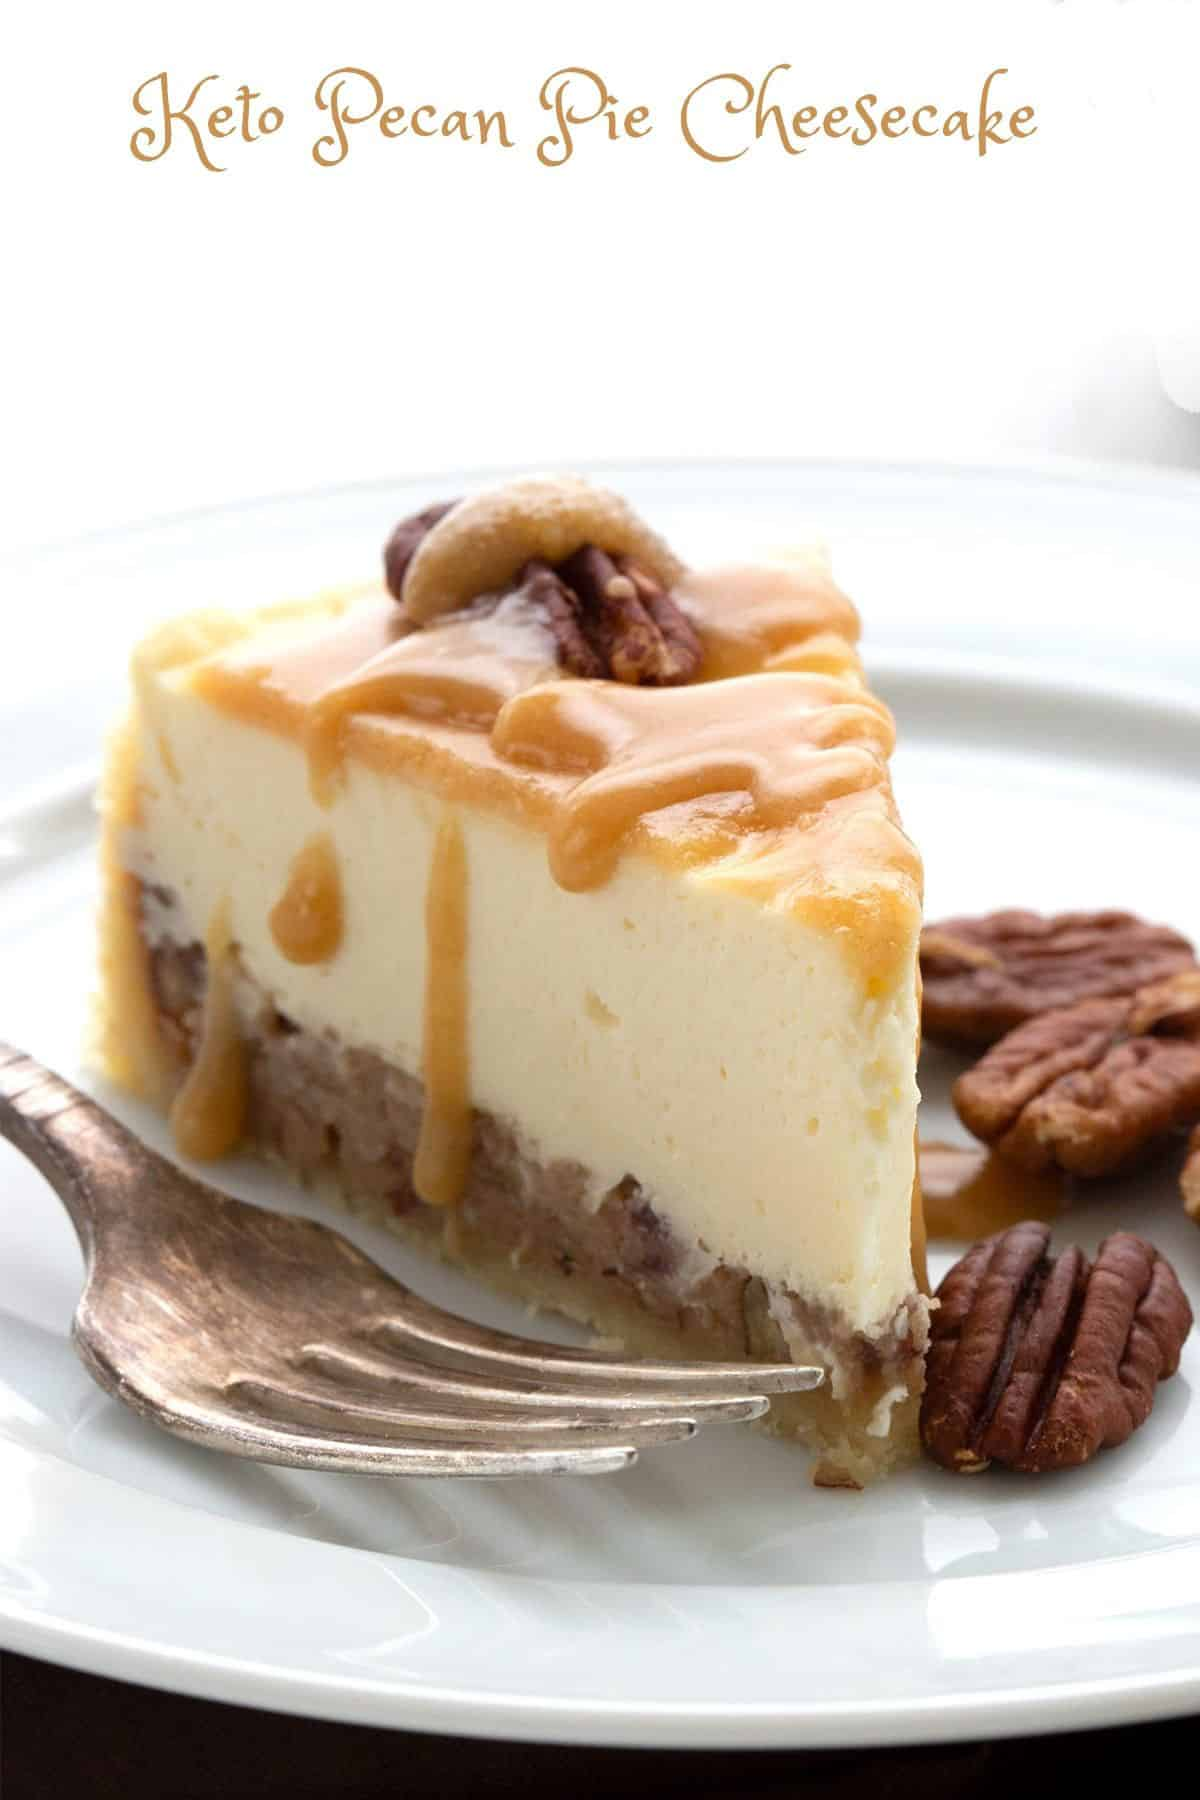 A slice of keto pecan pie cheesecake on a white plate.